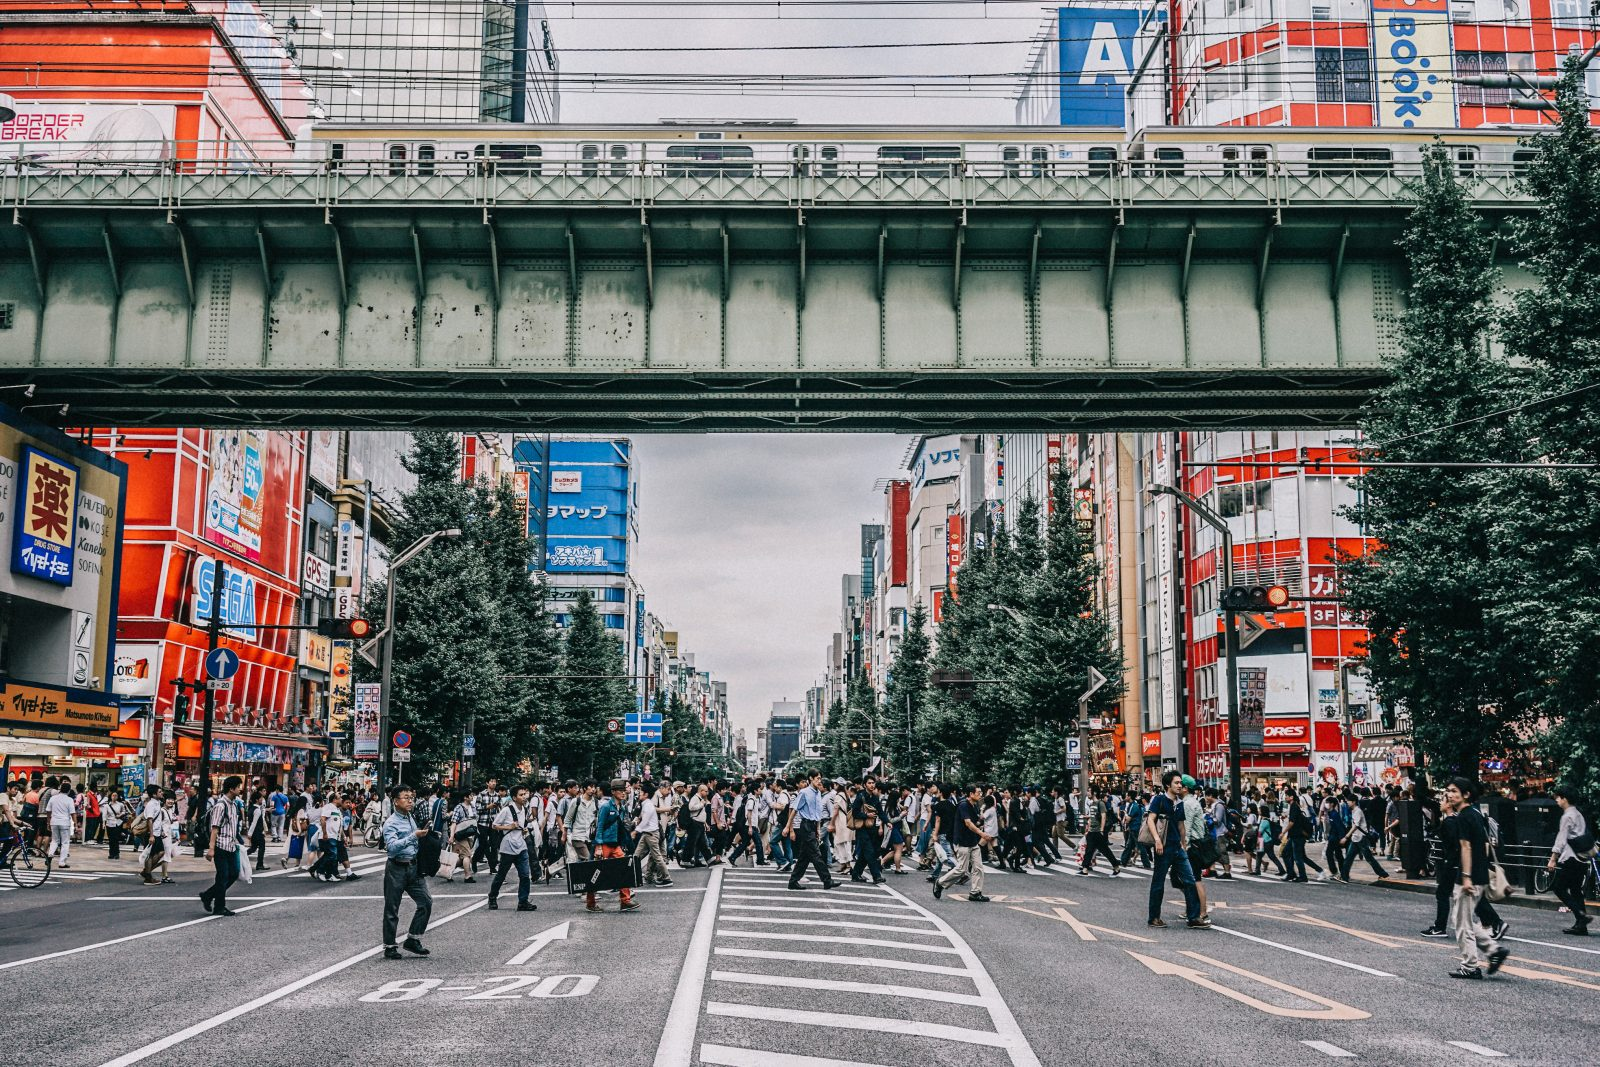 tokyo_travel_guide-outfit-collage_vintage-street_style-lovers_and_friends_jumpsuit-white_outfit-espadrilles-backpack-levis_denim_jacket-akihabara-133